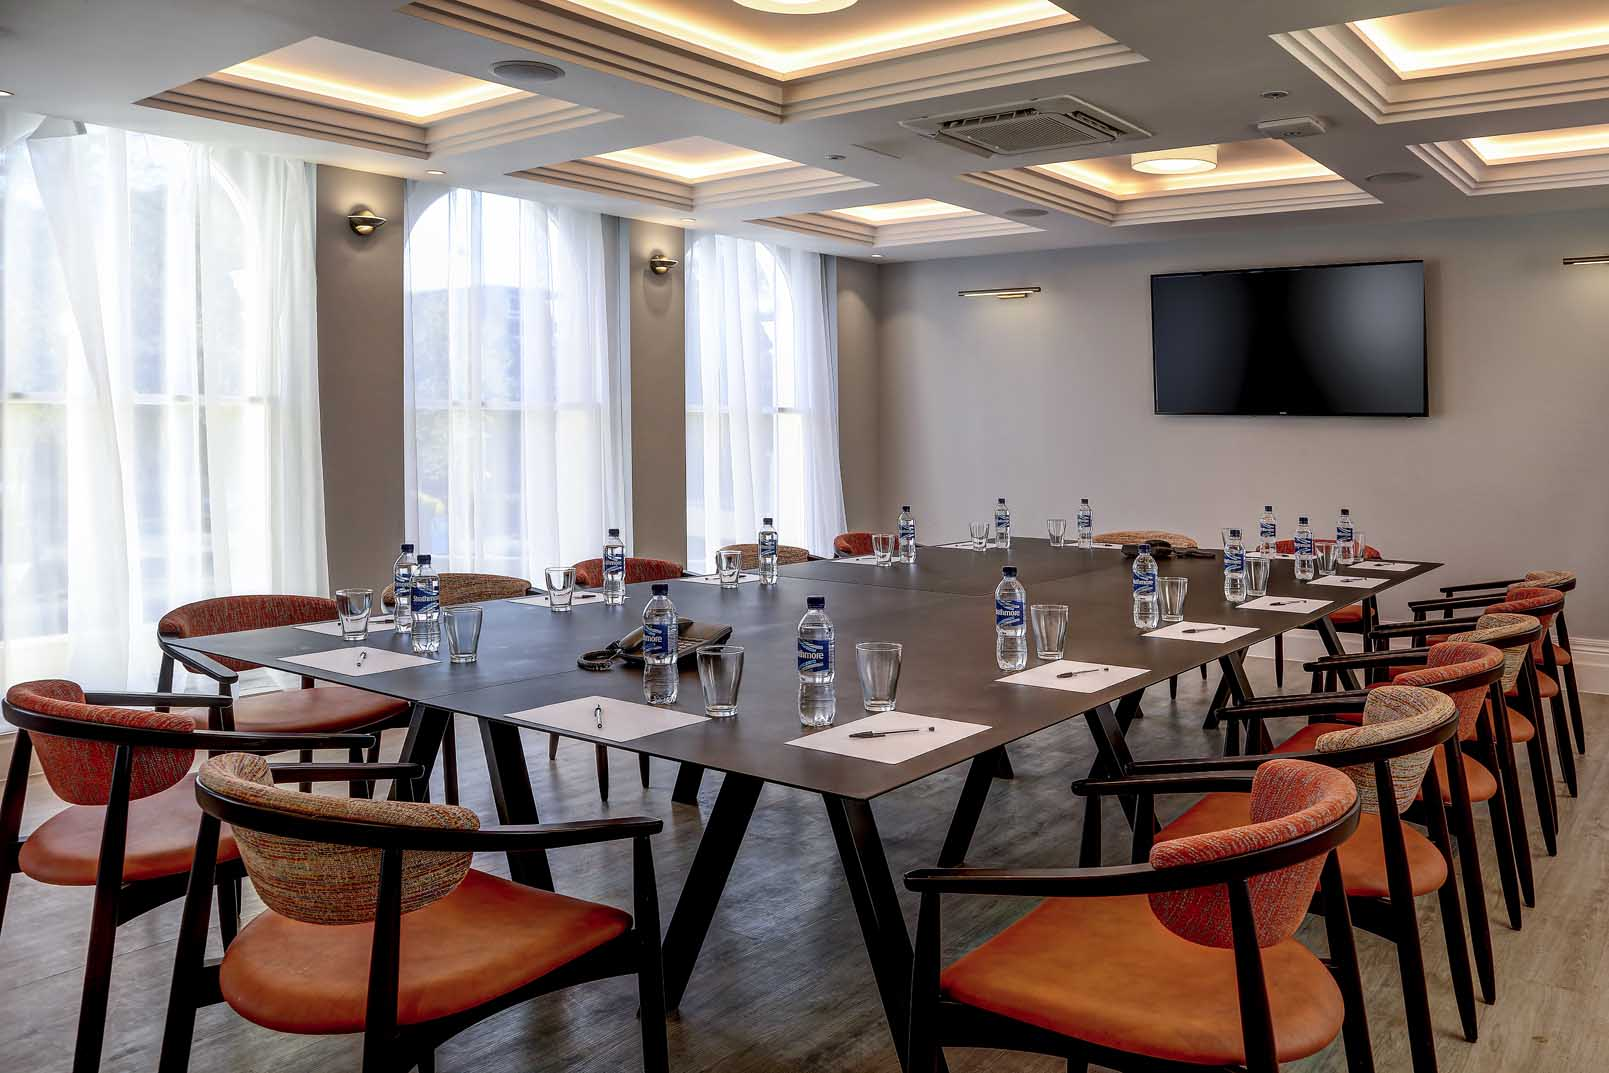 ... crystal-palace-queens-hotel-meeting-space-01-84225 ... d356eef2c4